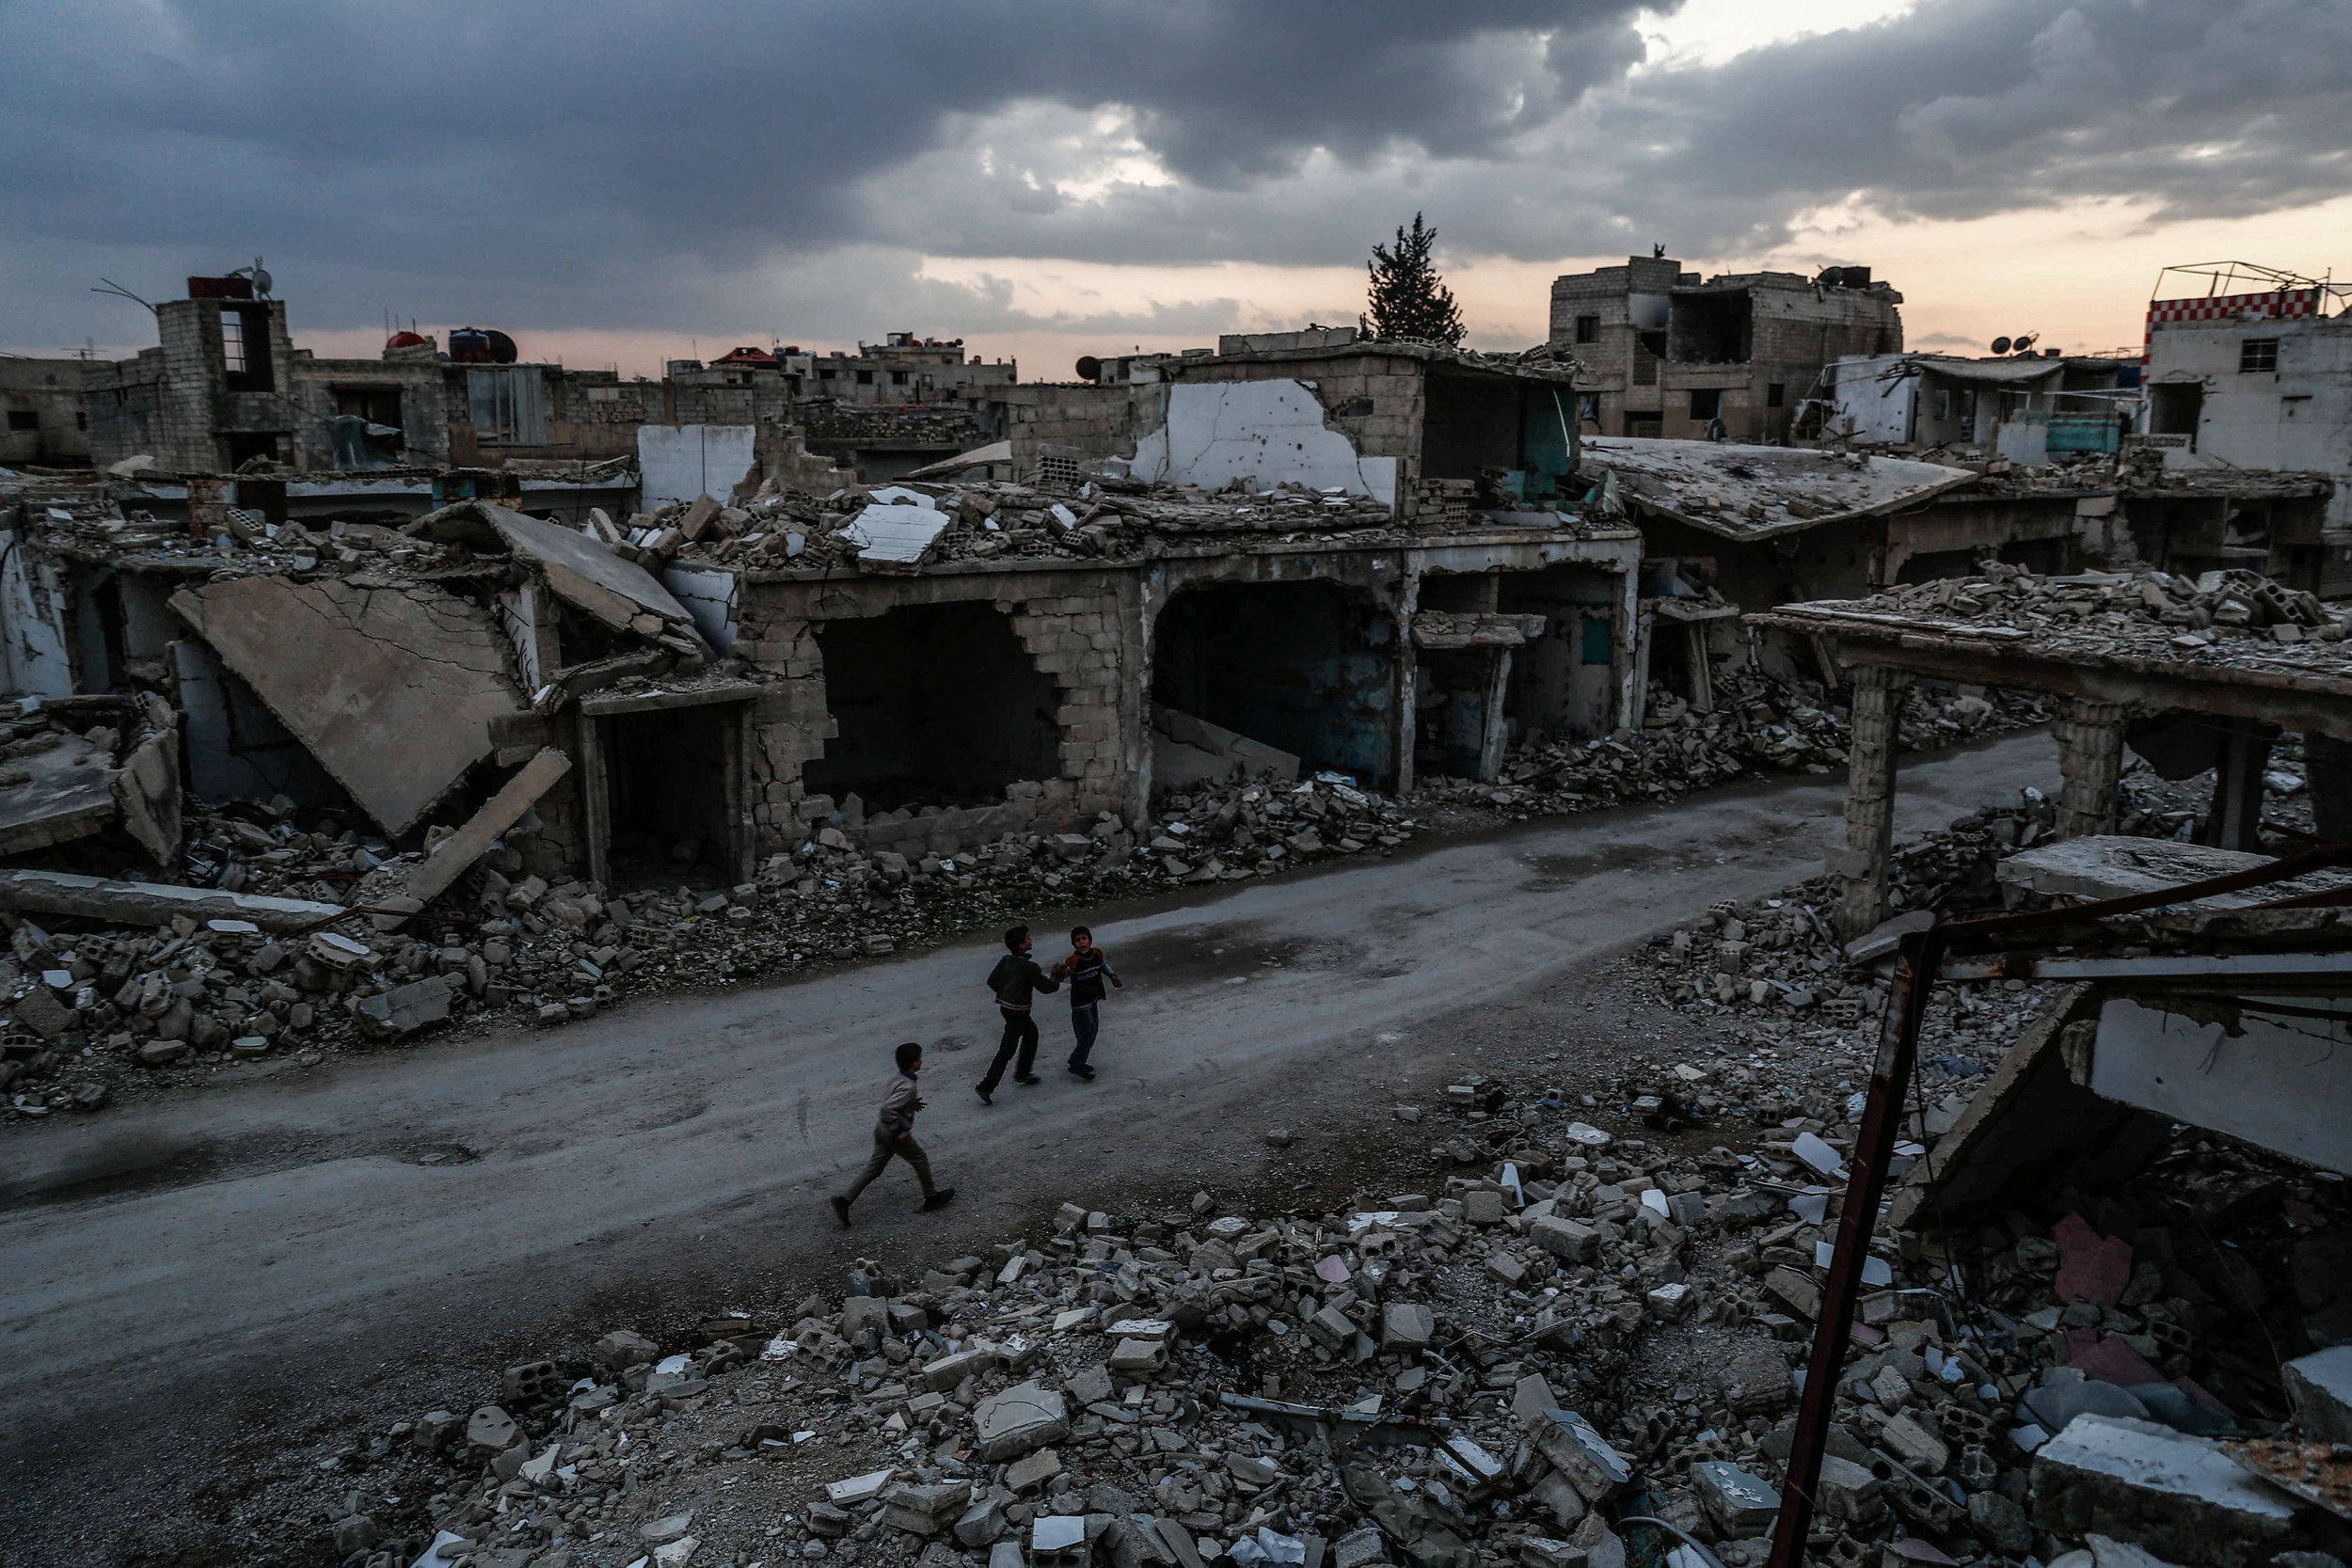 - Children walk past heavily damaged buildings in the city of Douma, on the eastern edges of the capital Damascus on February 27, 2016, on the first day of the landmark ceasefire agreement.